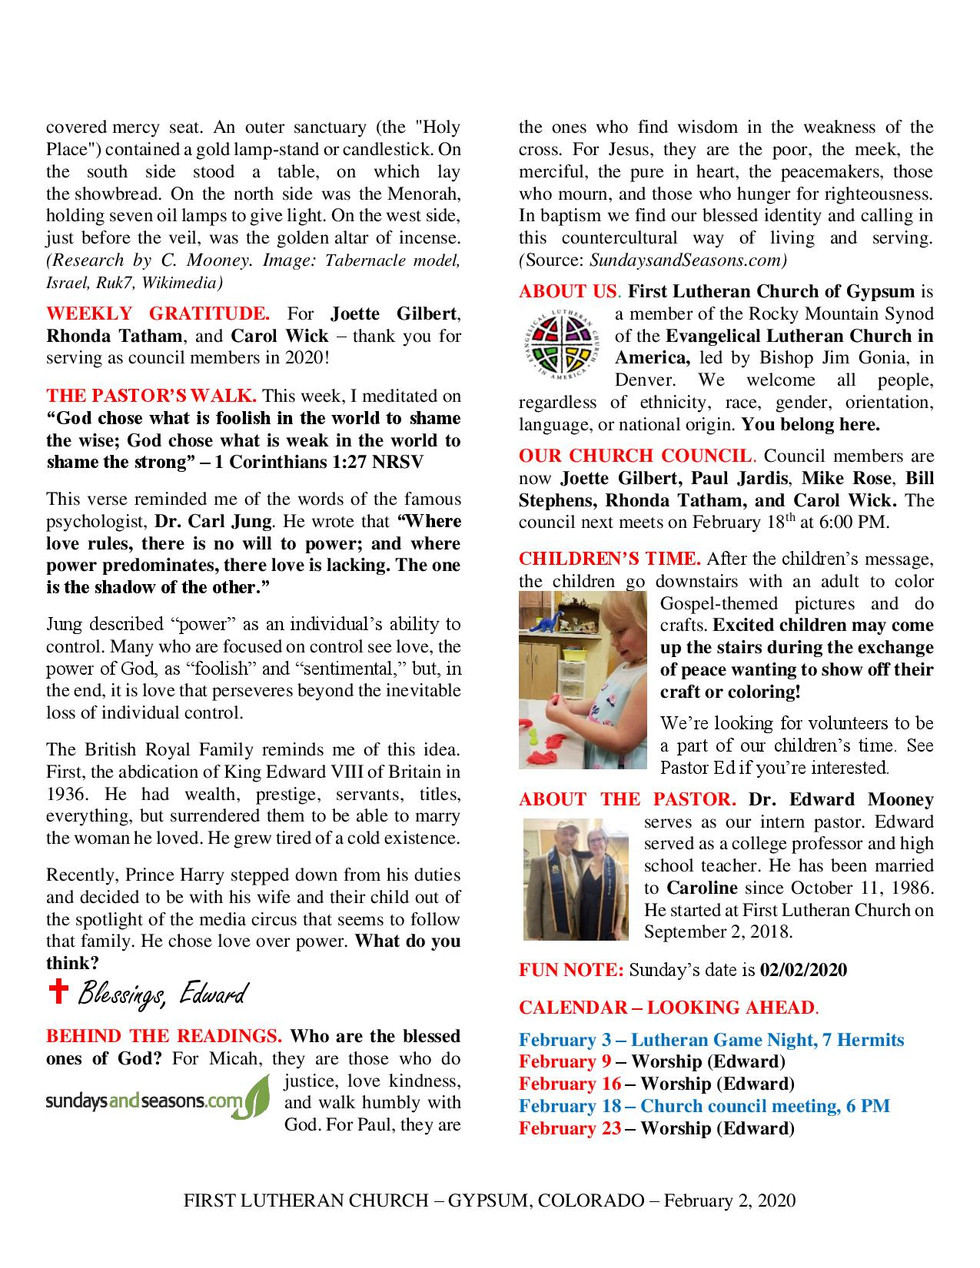 Newsletter, February 2, 2020, page 2